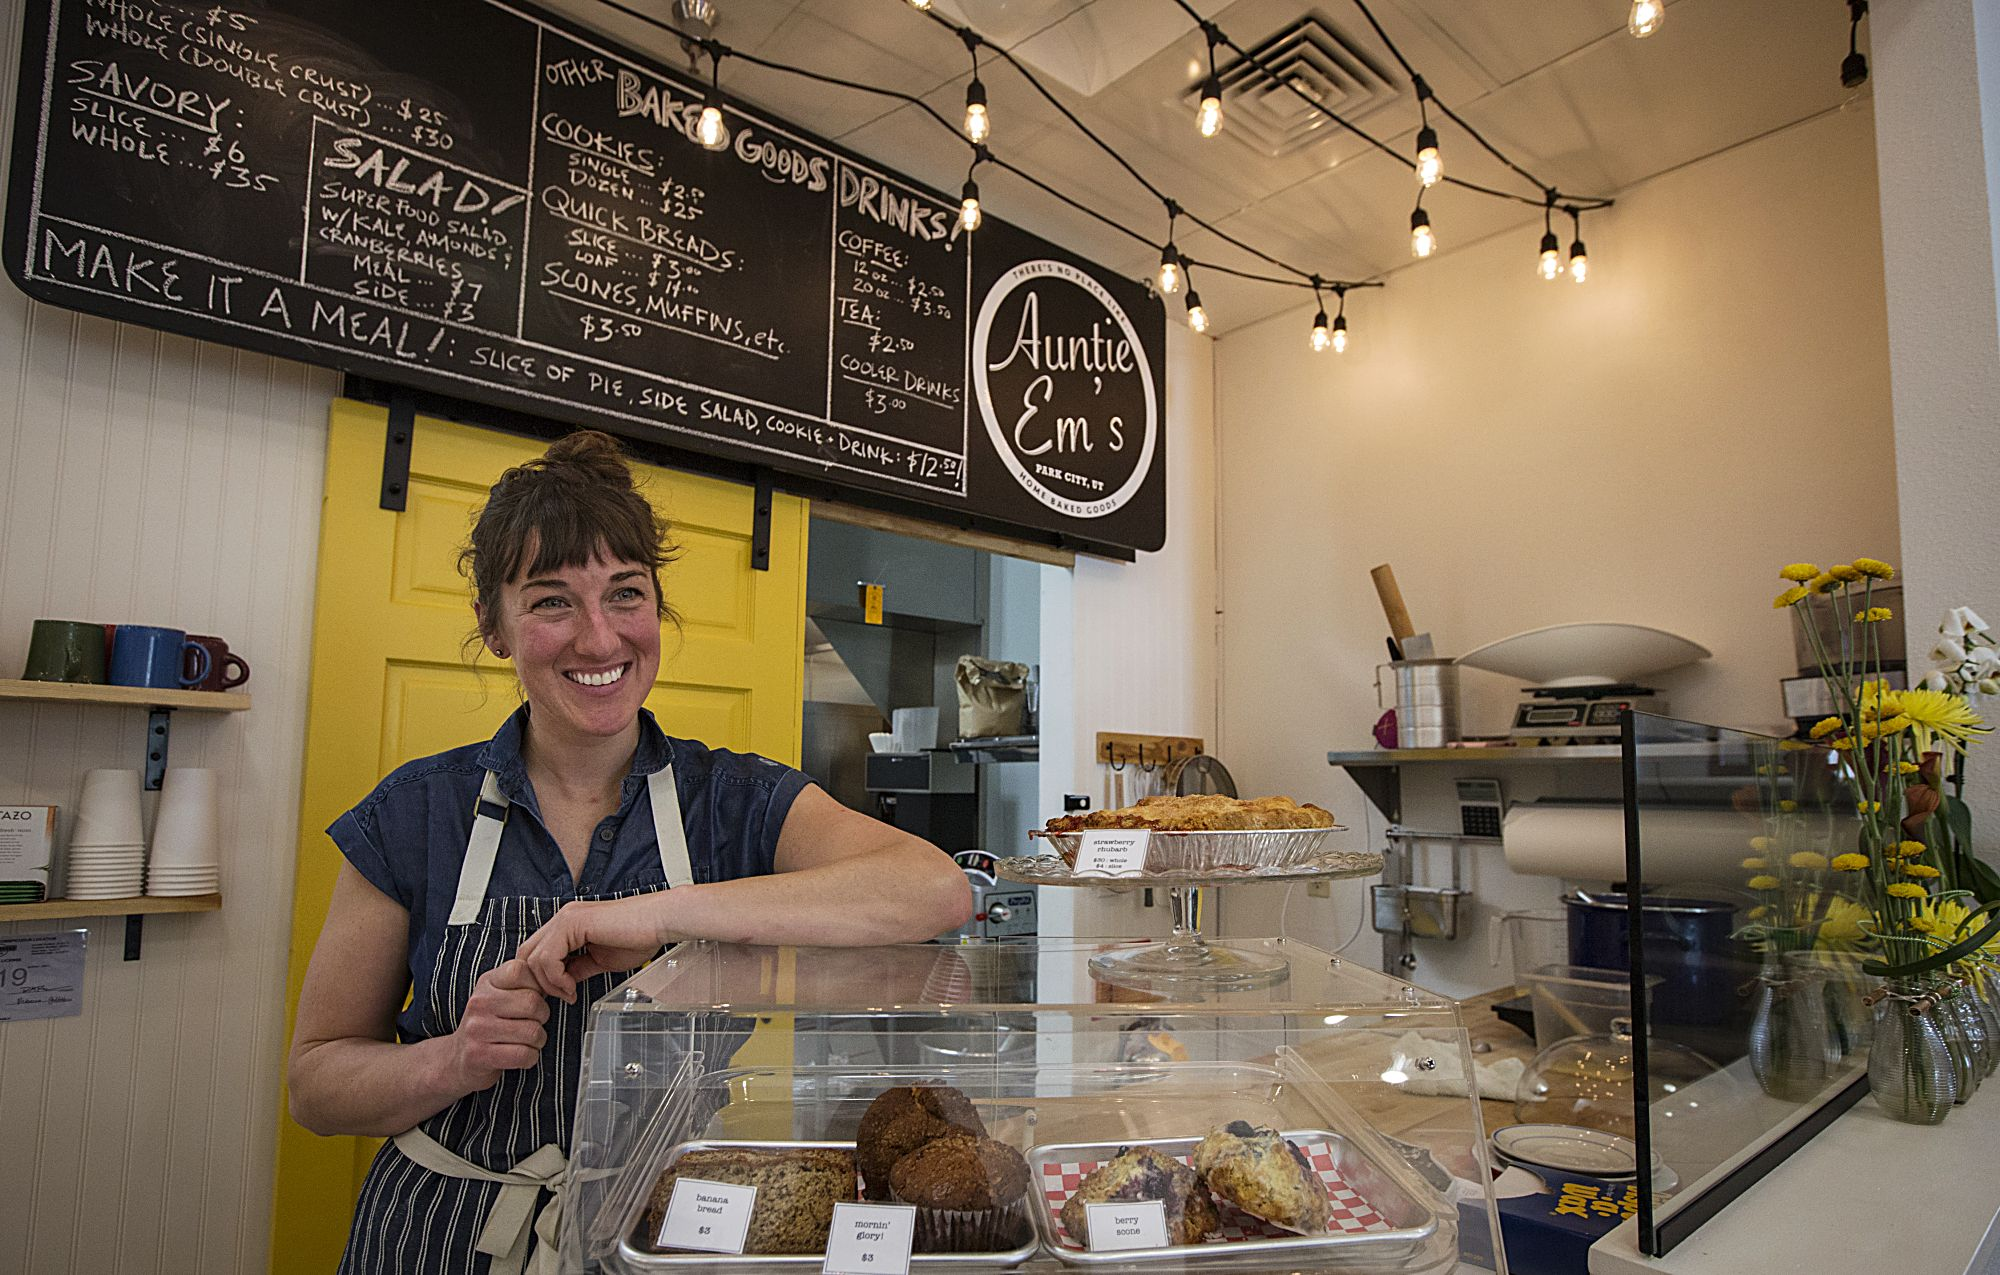 Park City baker to serve pies and other sweets at Kimball Art Center